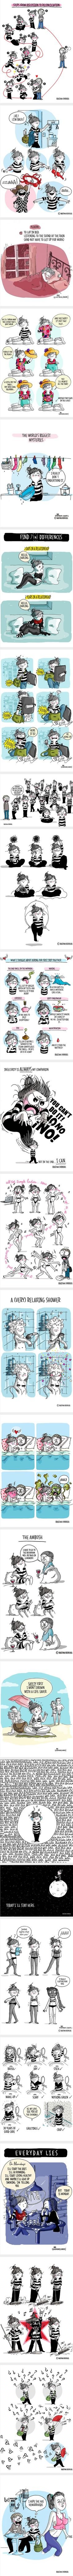 24 Comics About What It's Like To Be A Girl (By Agustina Guerrero)